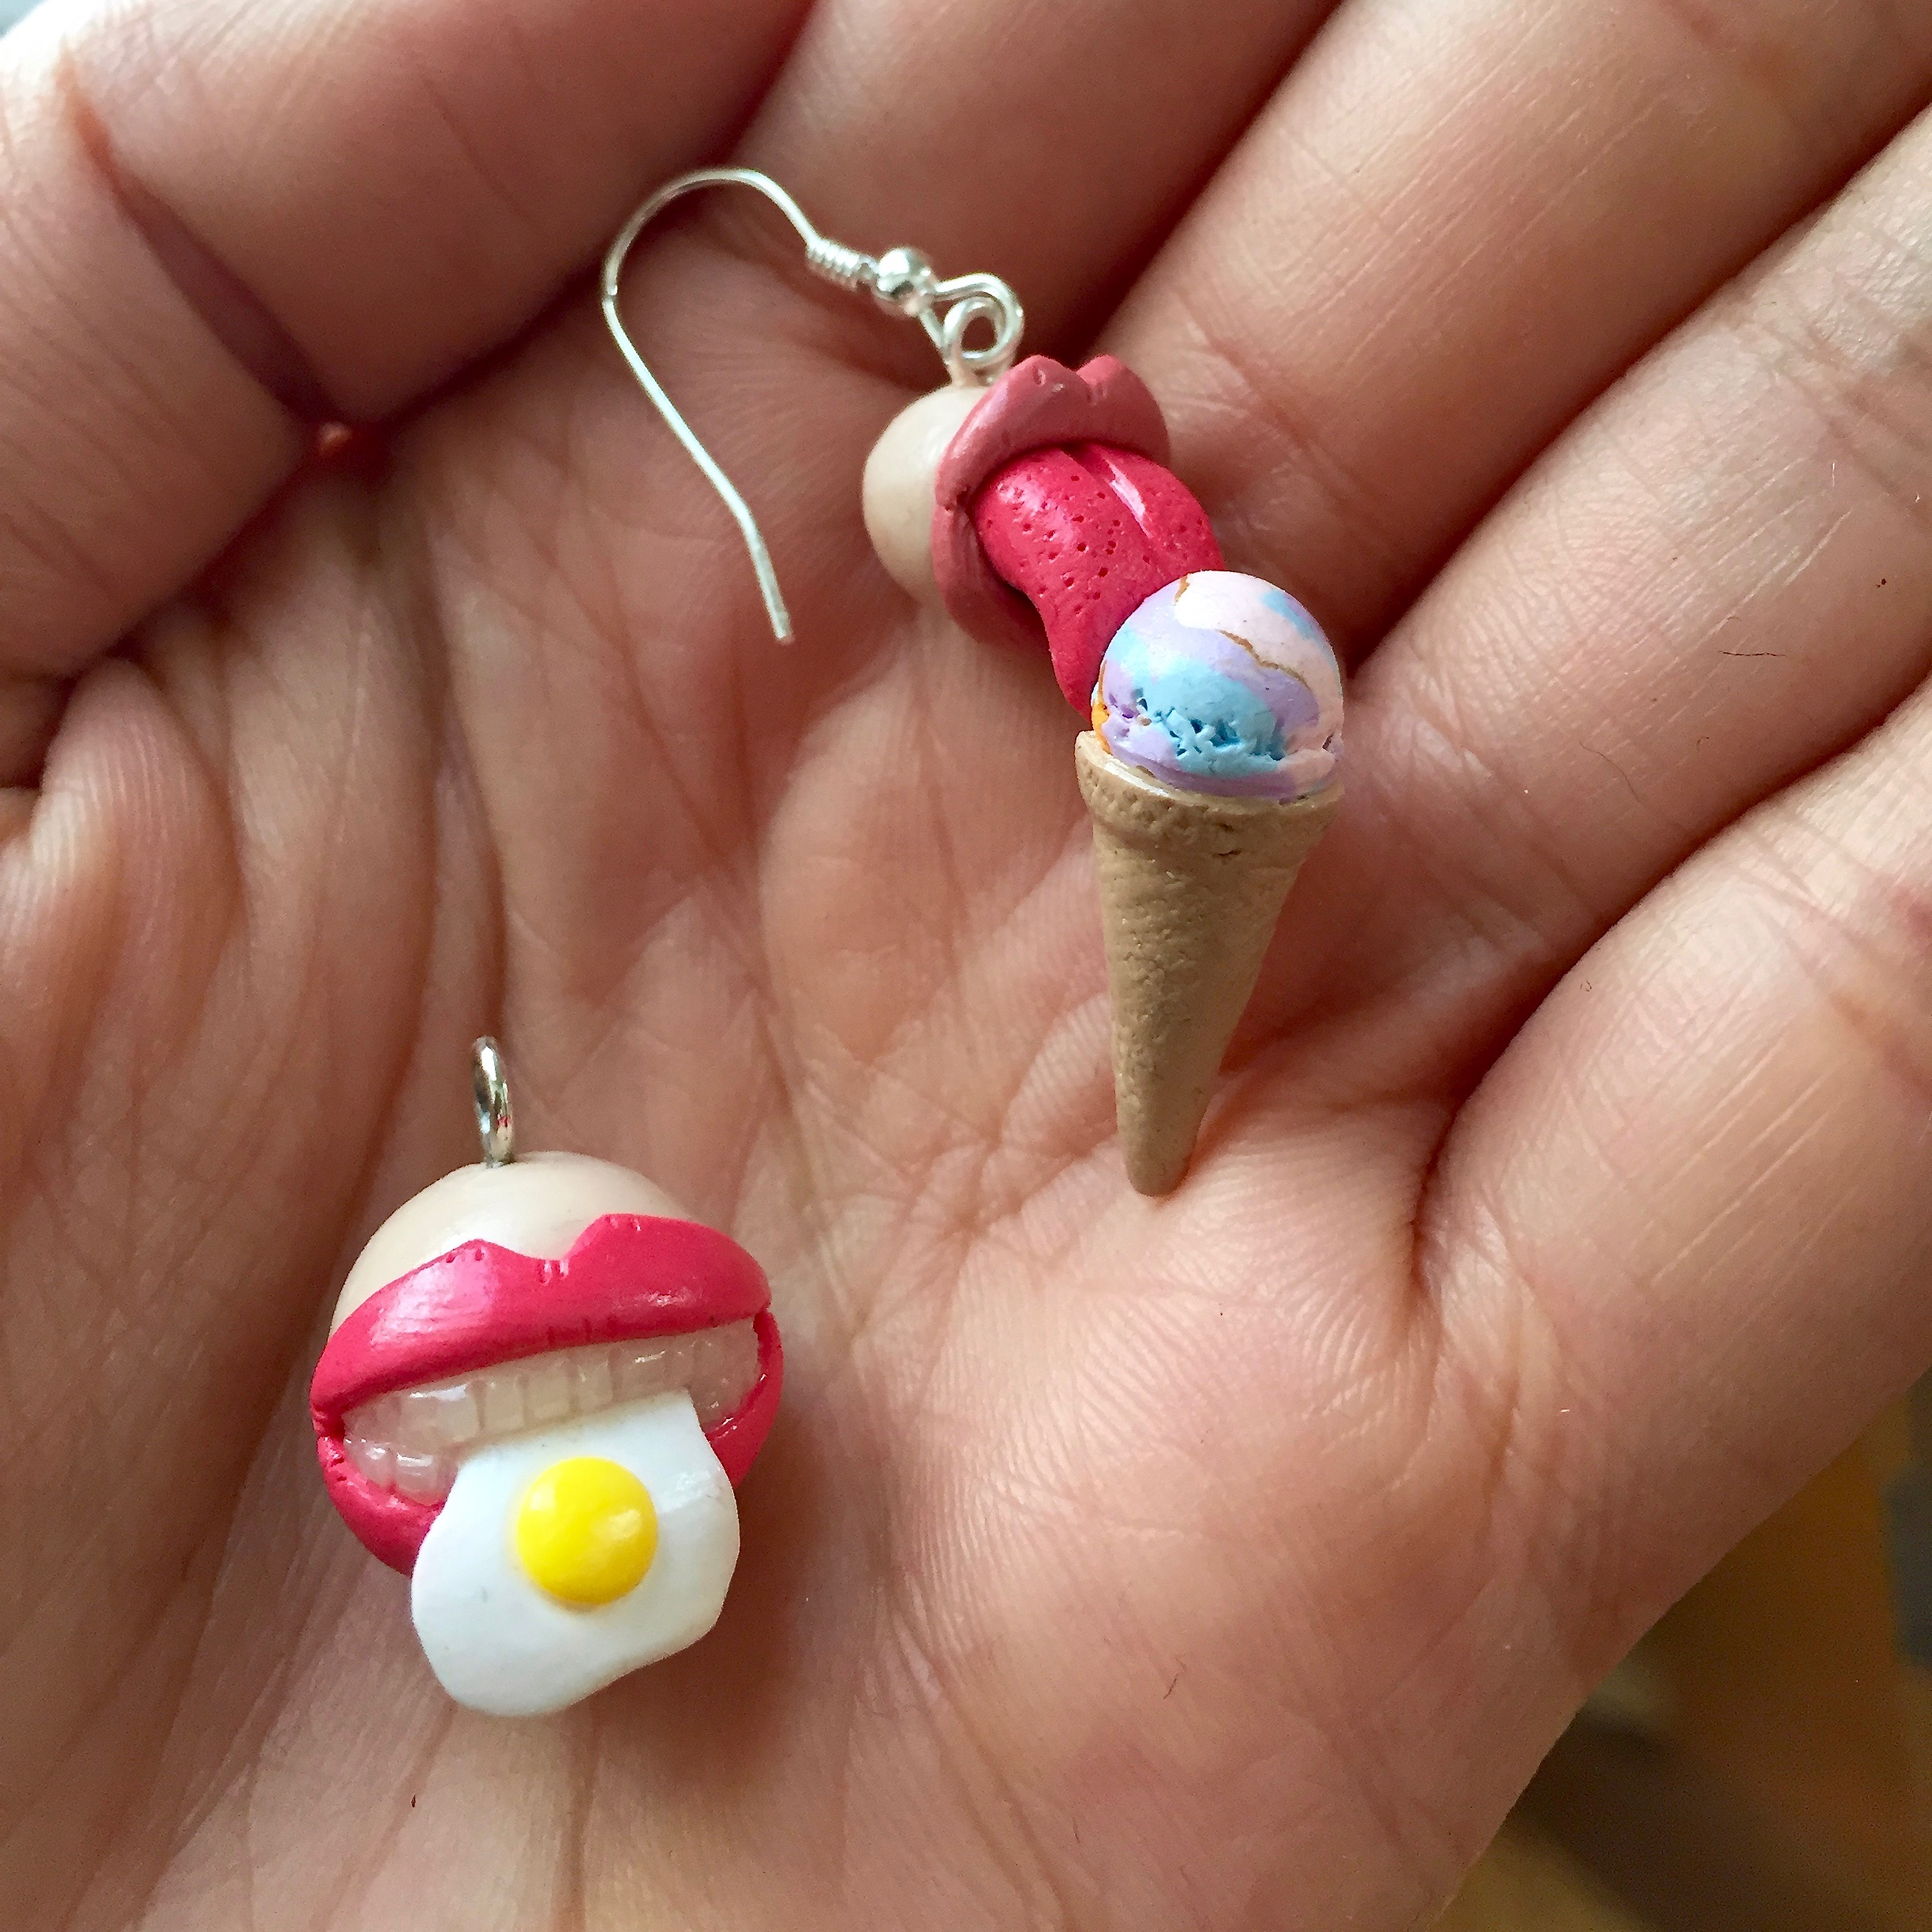 Polymer clay ice cream tongue lick earring and fried egg mouth charm by Small Things jewelry.